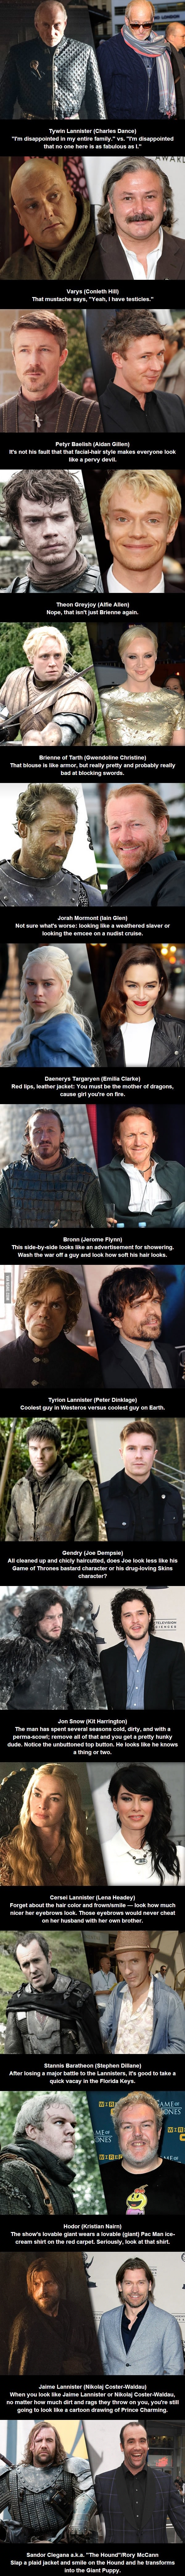 Game Of Thrones Actors In Real Life